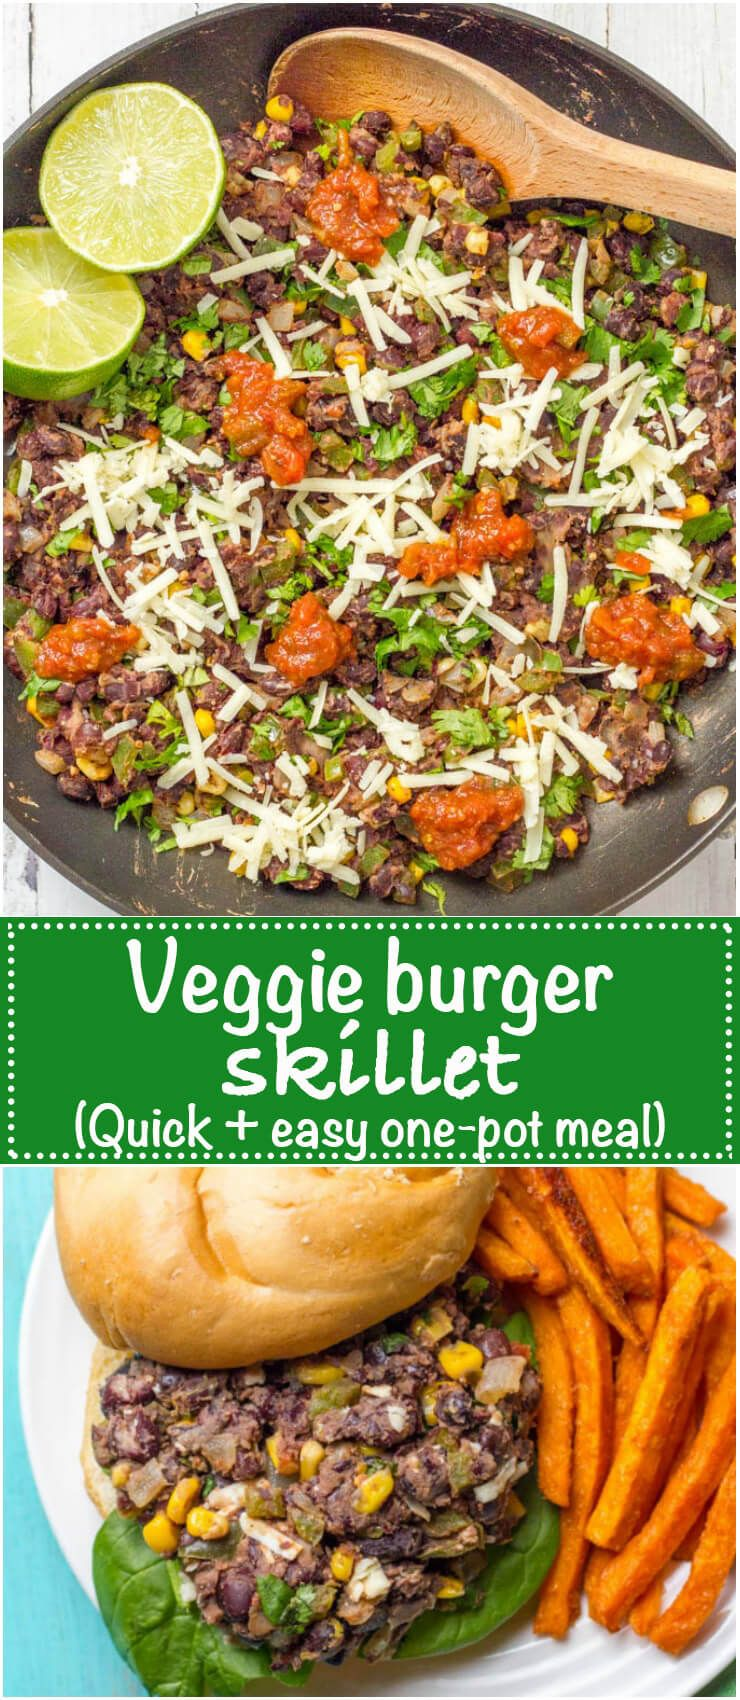 Veggie burger skillet is a quick and easy one-pan dinner that's vegan, gluten free and ready in about 20 minutes! Serve as is, in a tortilla or pita, as lettuce wraps or on a bun.   www.familyfoodonthetable.com